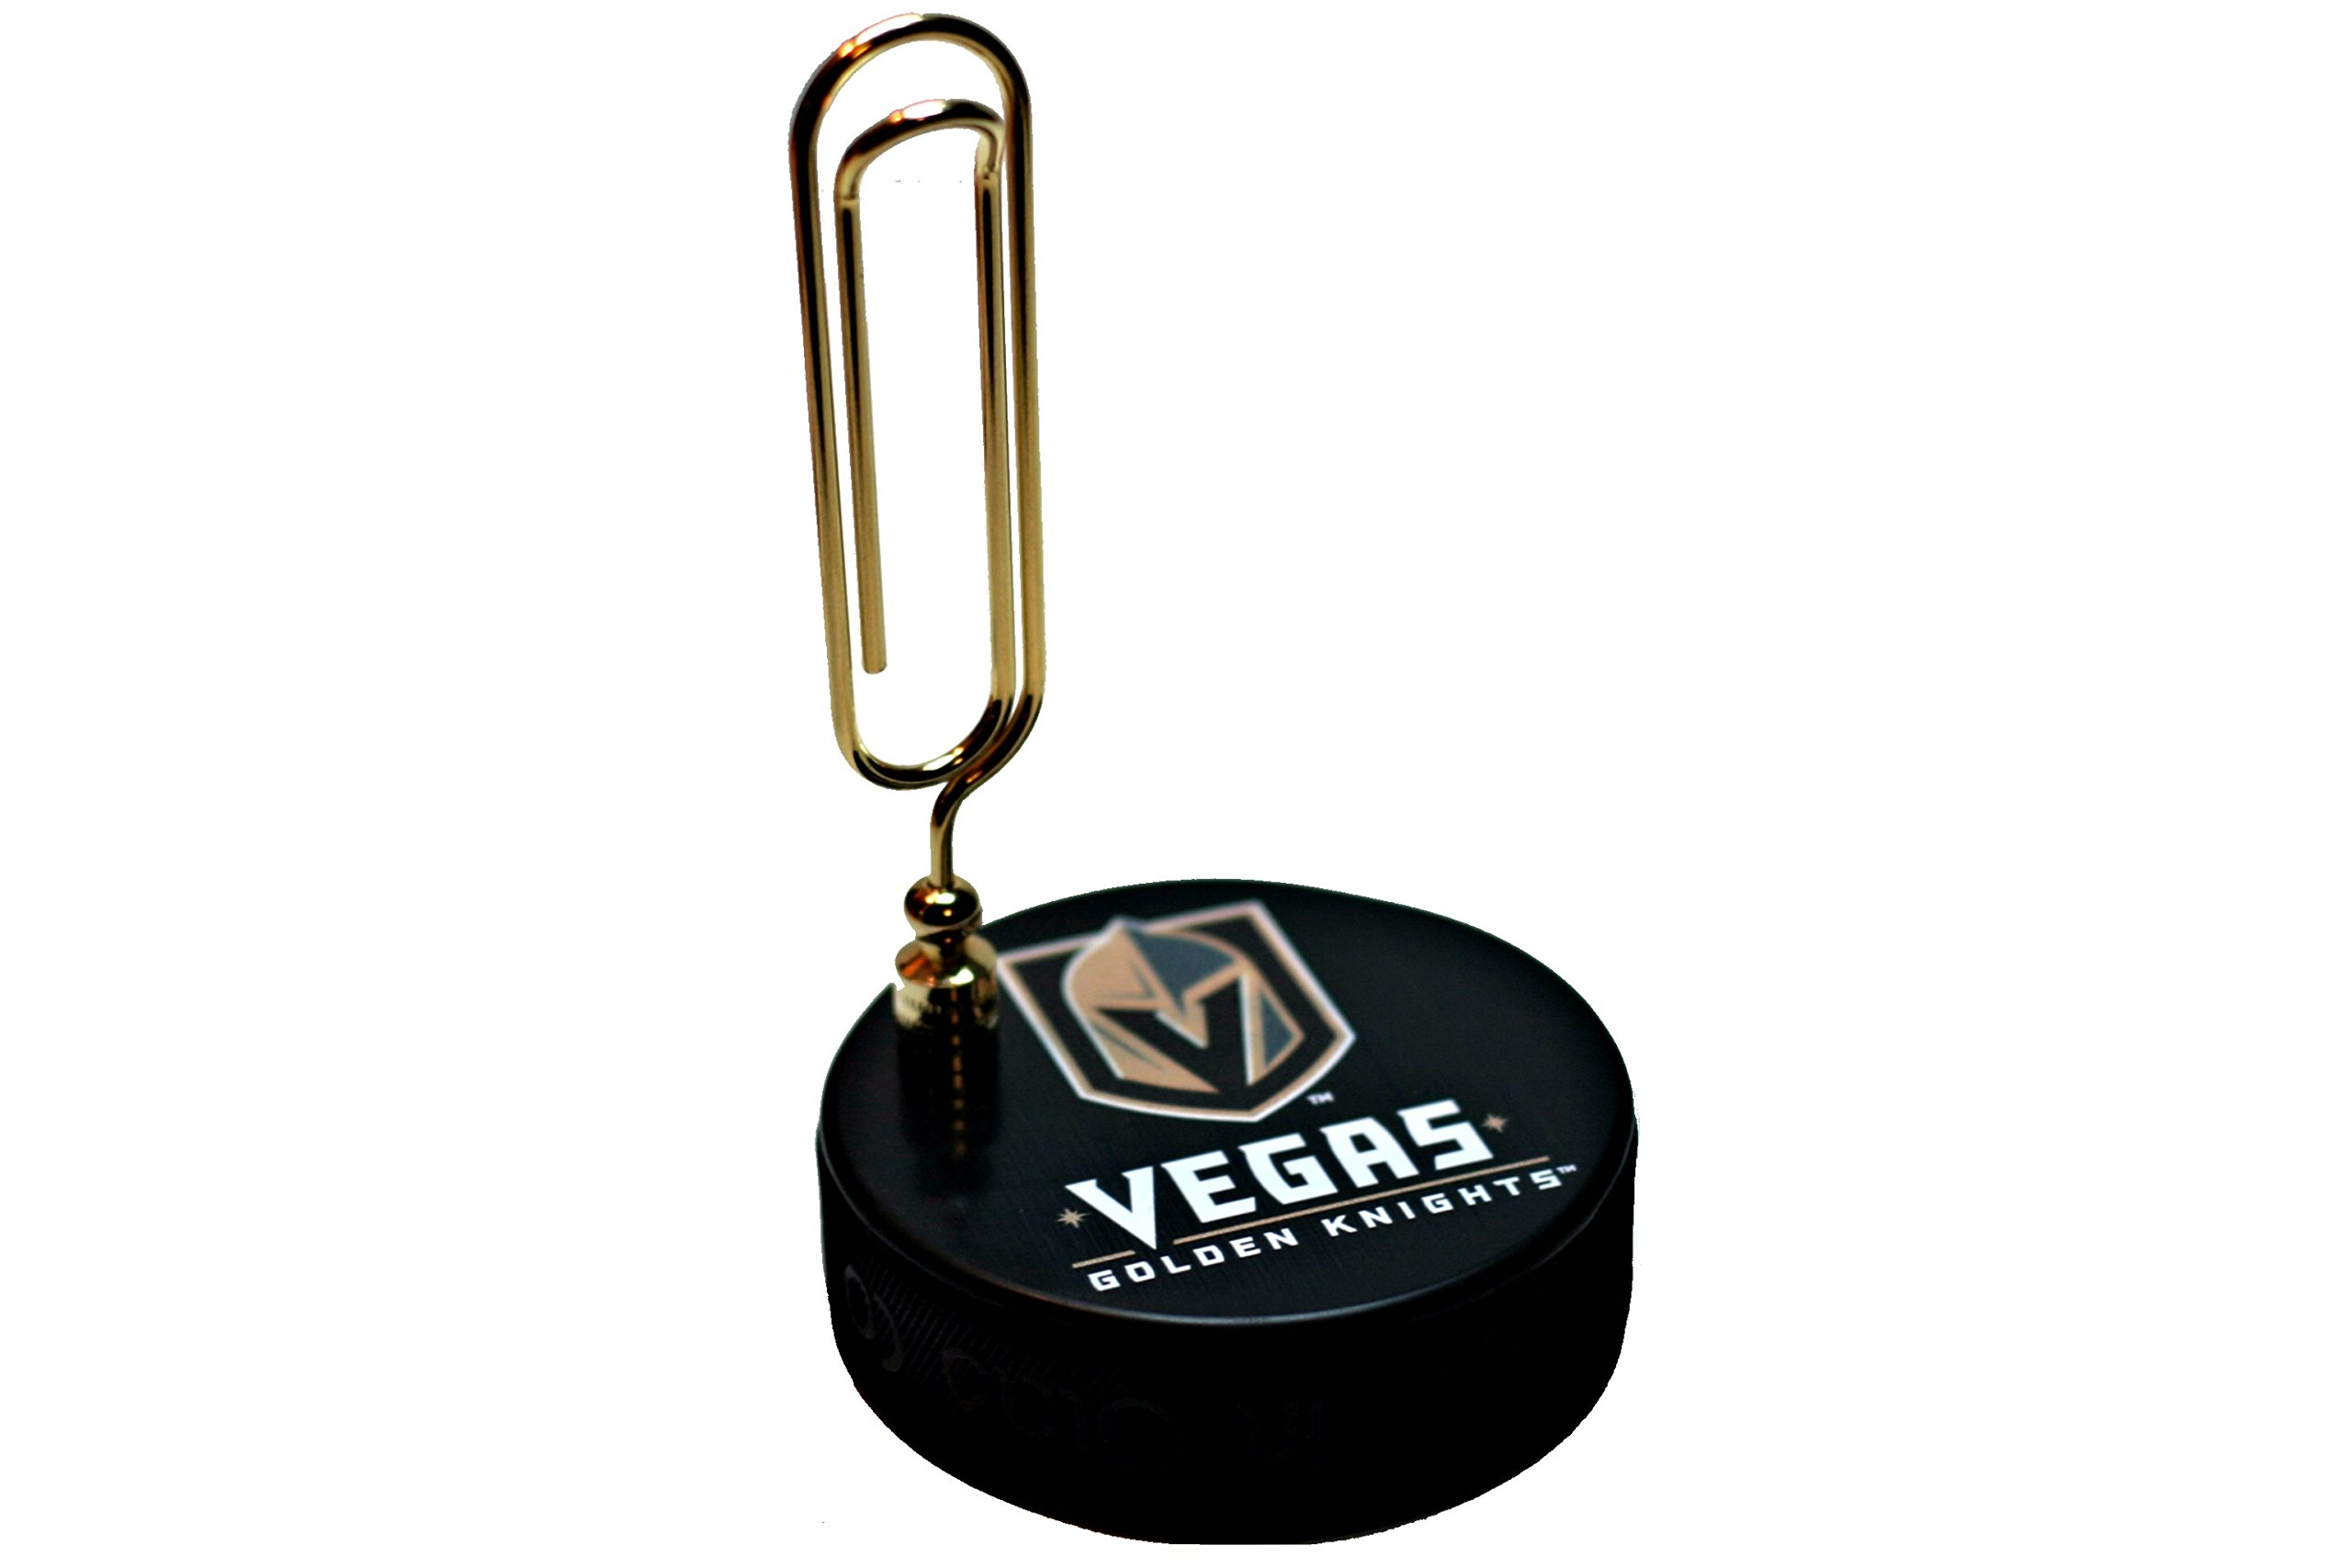 EBINGERS PLACE Las Vegas Golden Knights Basic Series Hockey Puck Note Holder